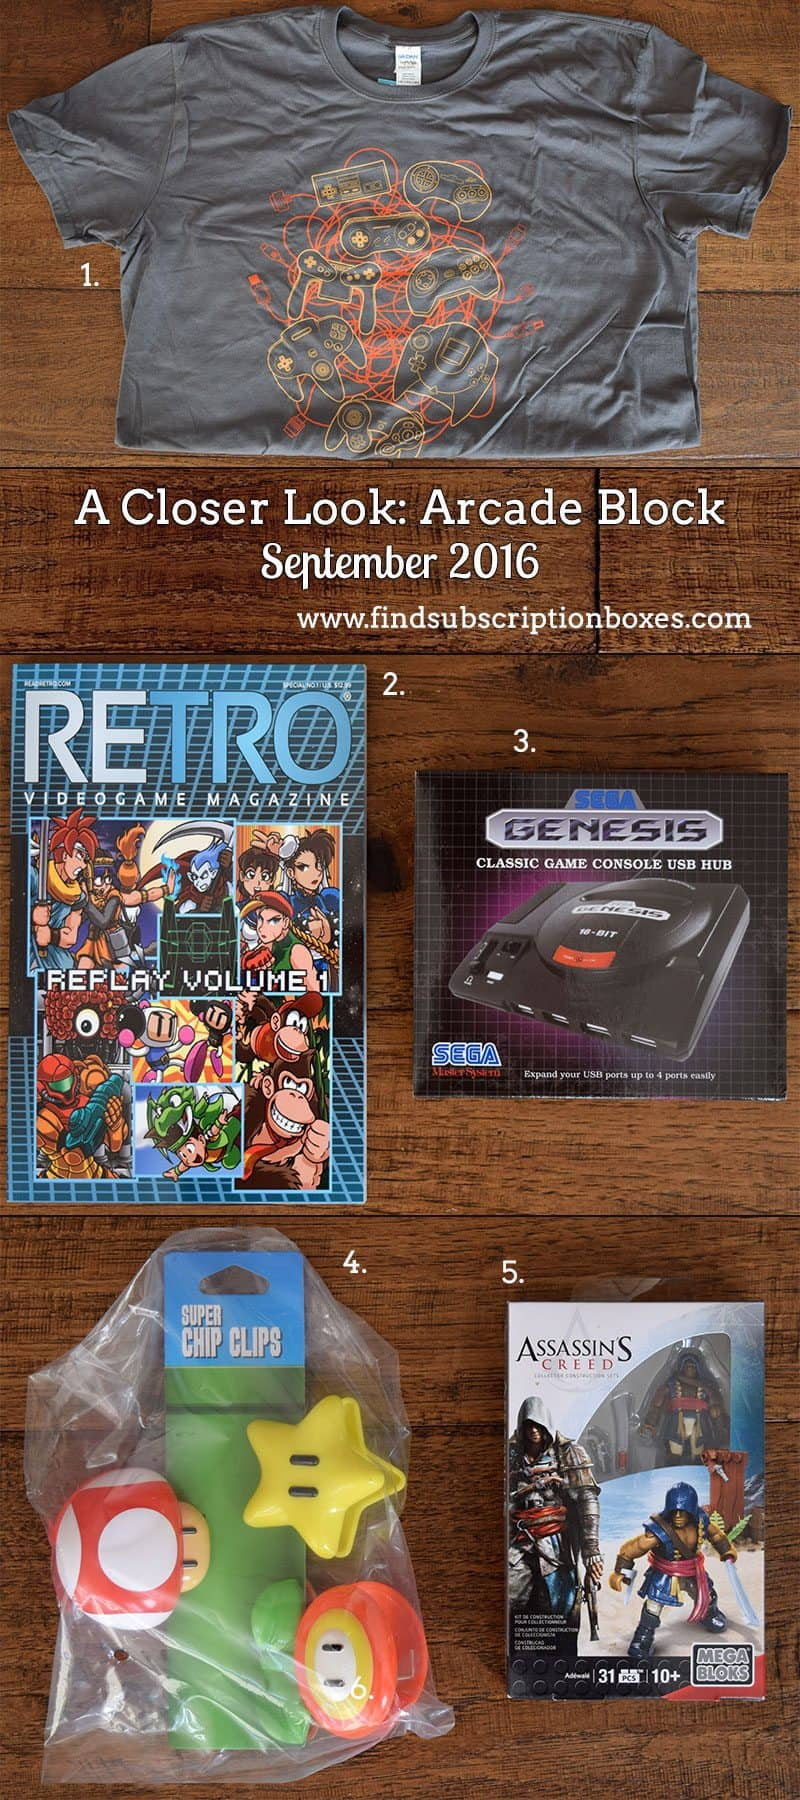 September 2016 Arcade Block Review - Inside the Box